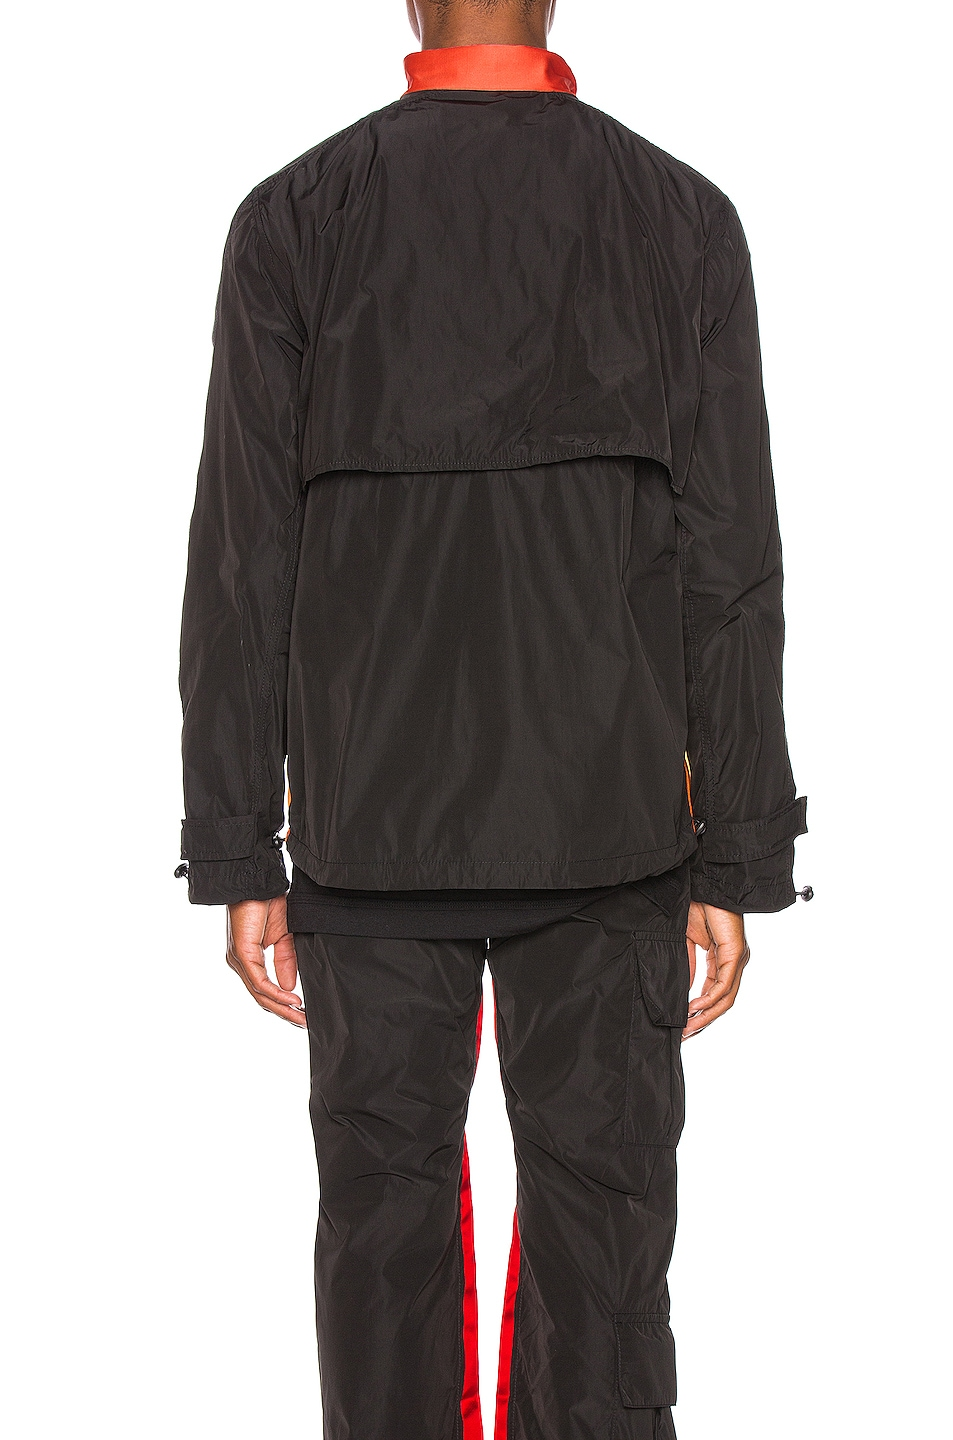 Image 6 of Wales Bonner Patchwork Anorak Jacket in Black & Multi